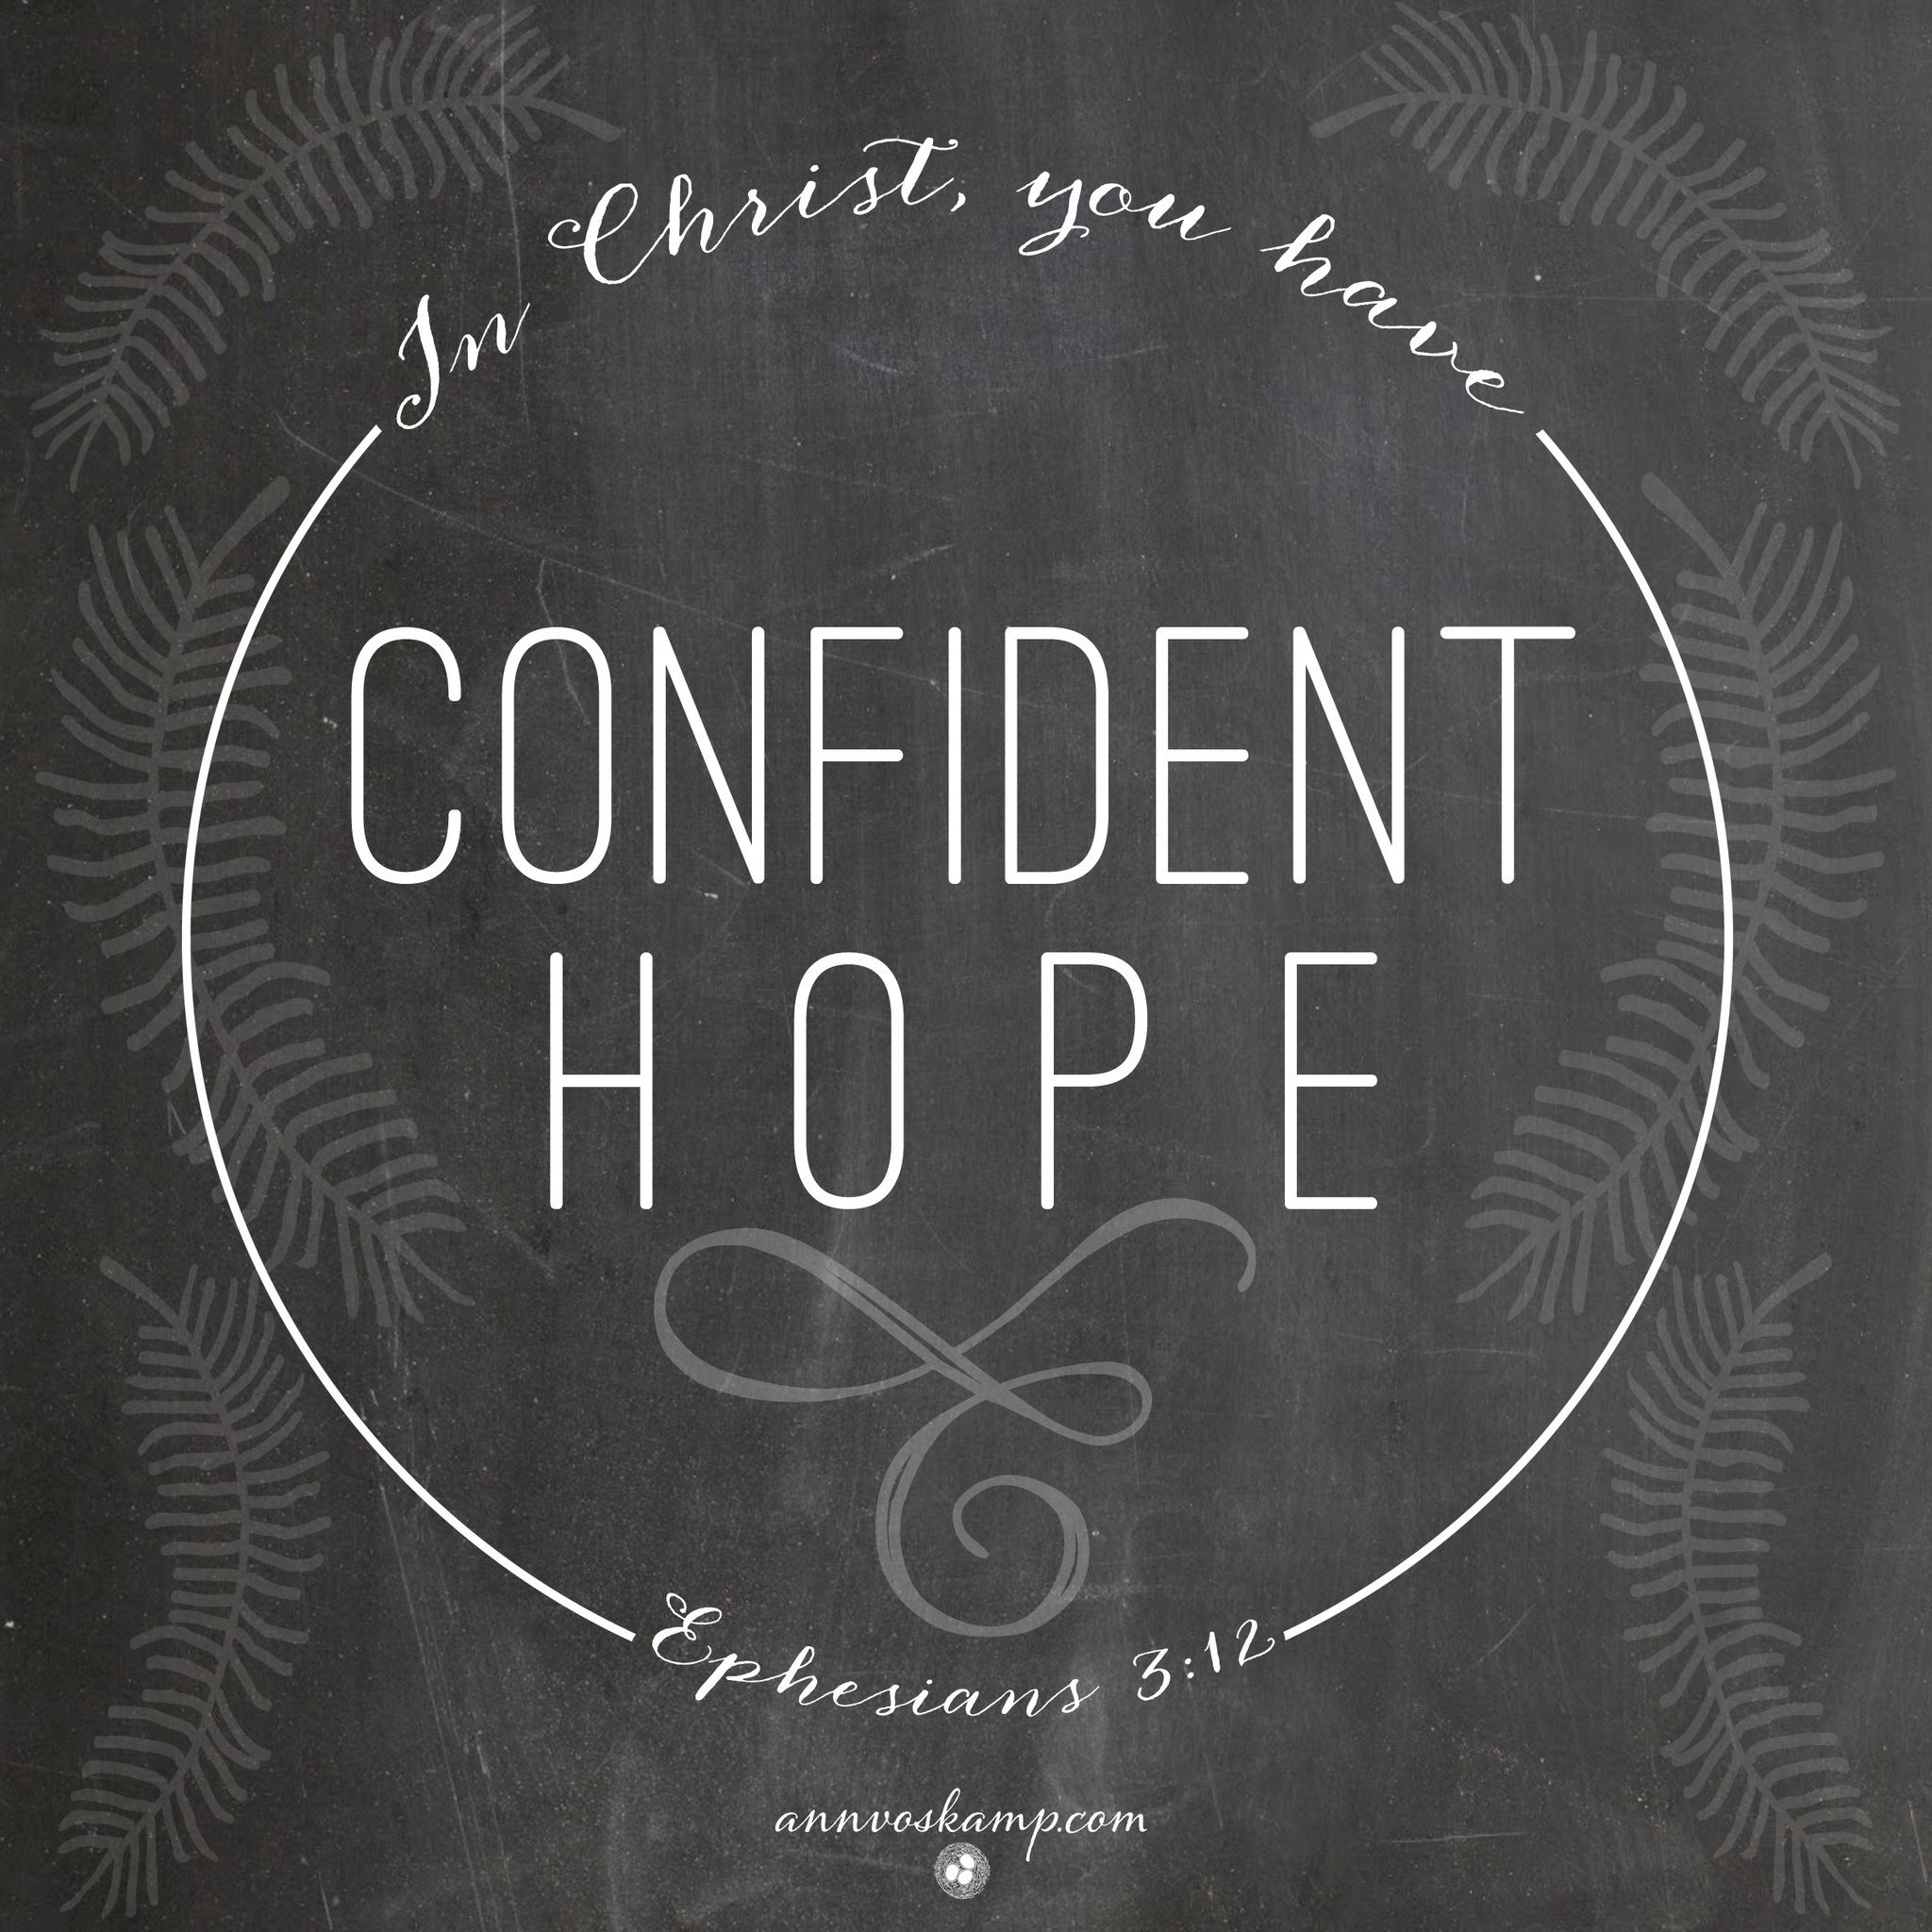 In Christ You Have Confident Hope (chalk)